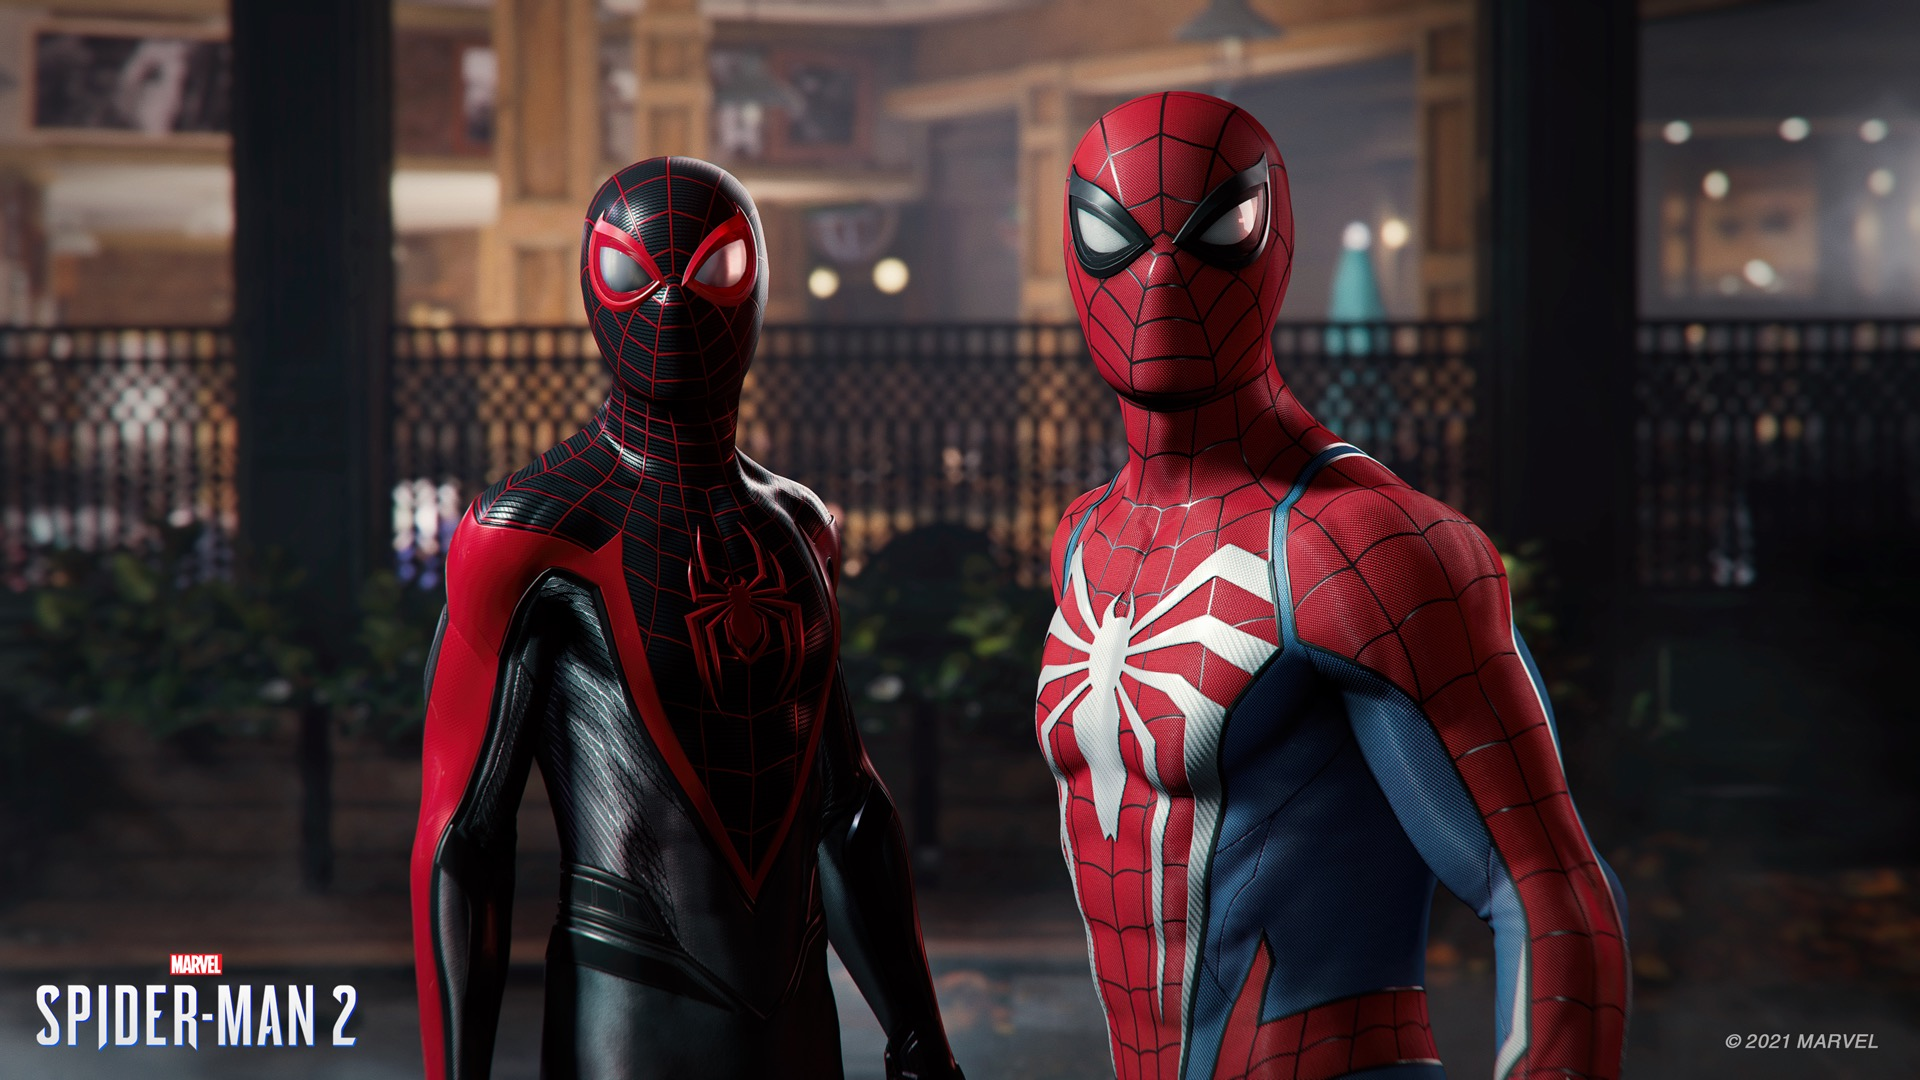 Miles Morales and Peter Parker as Spider-Man in Marvel's Spider-Man 2